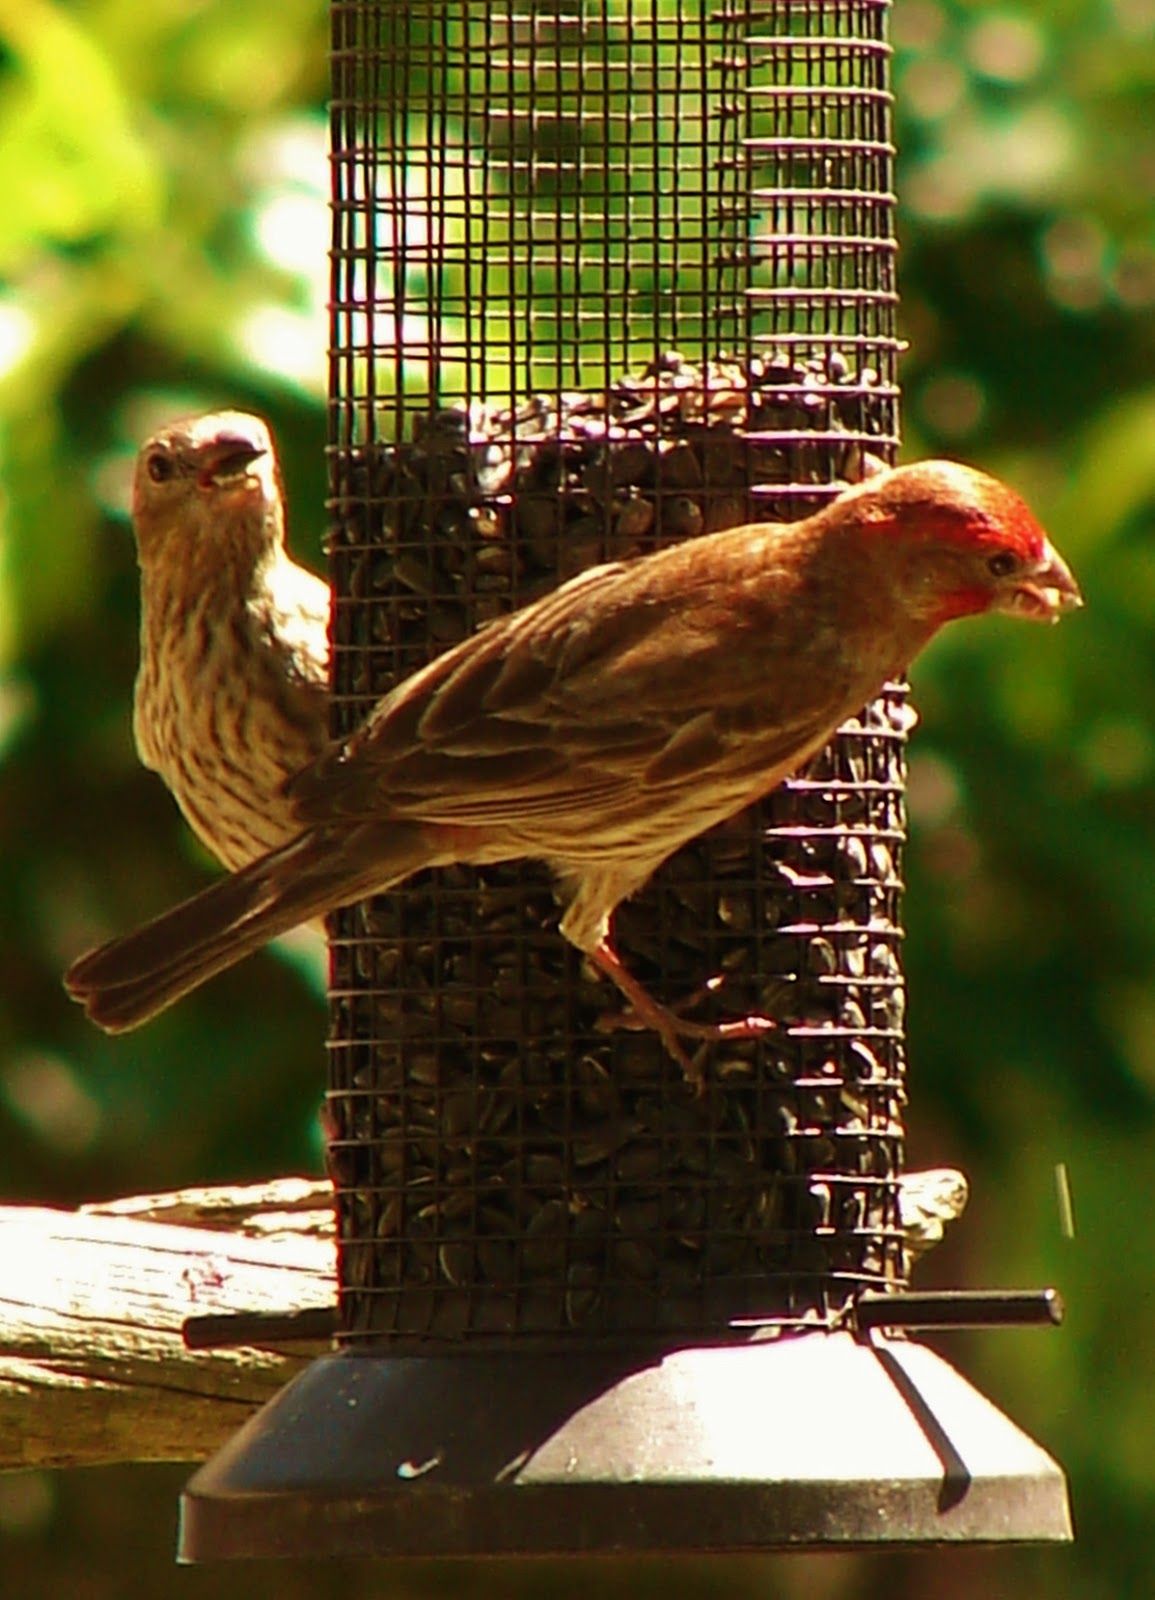 The Doves Pecked At Seeds Dropped From Feeders And Thrashers Towhees Searched Area For Critters I Was Feeling Pretty Happy With My Busy